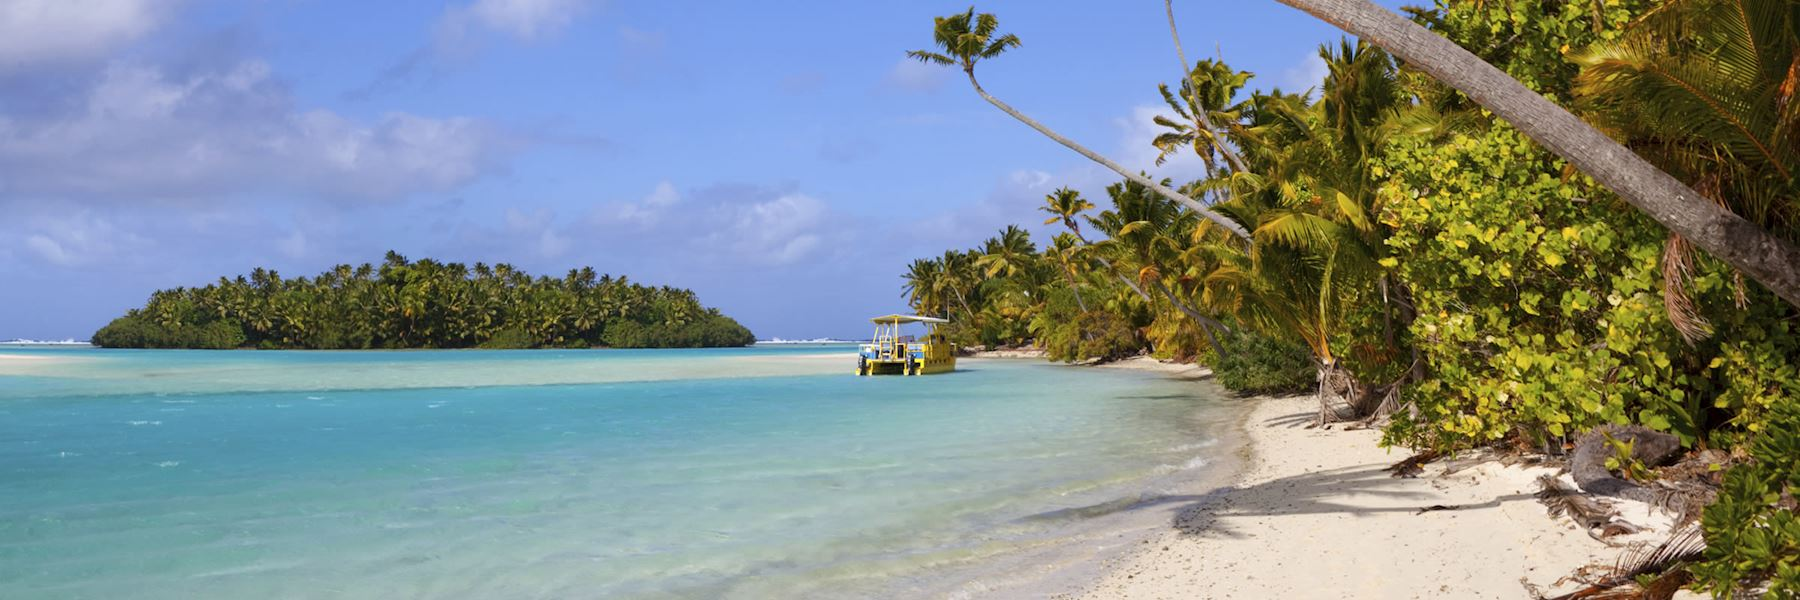 Places to visit in the Cook Islands